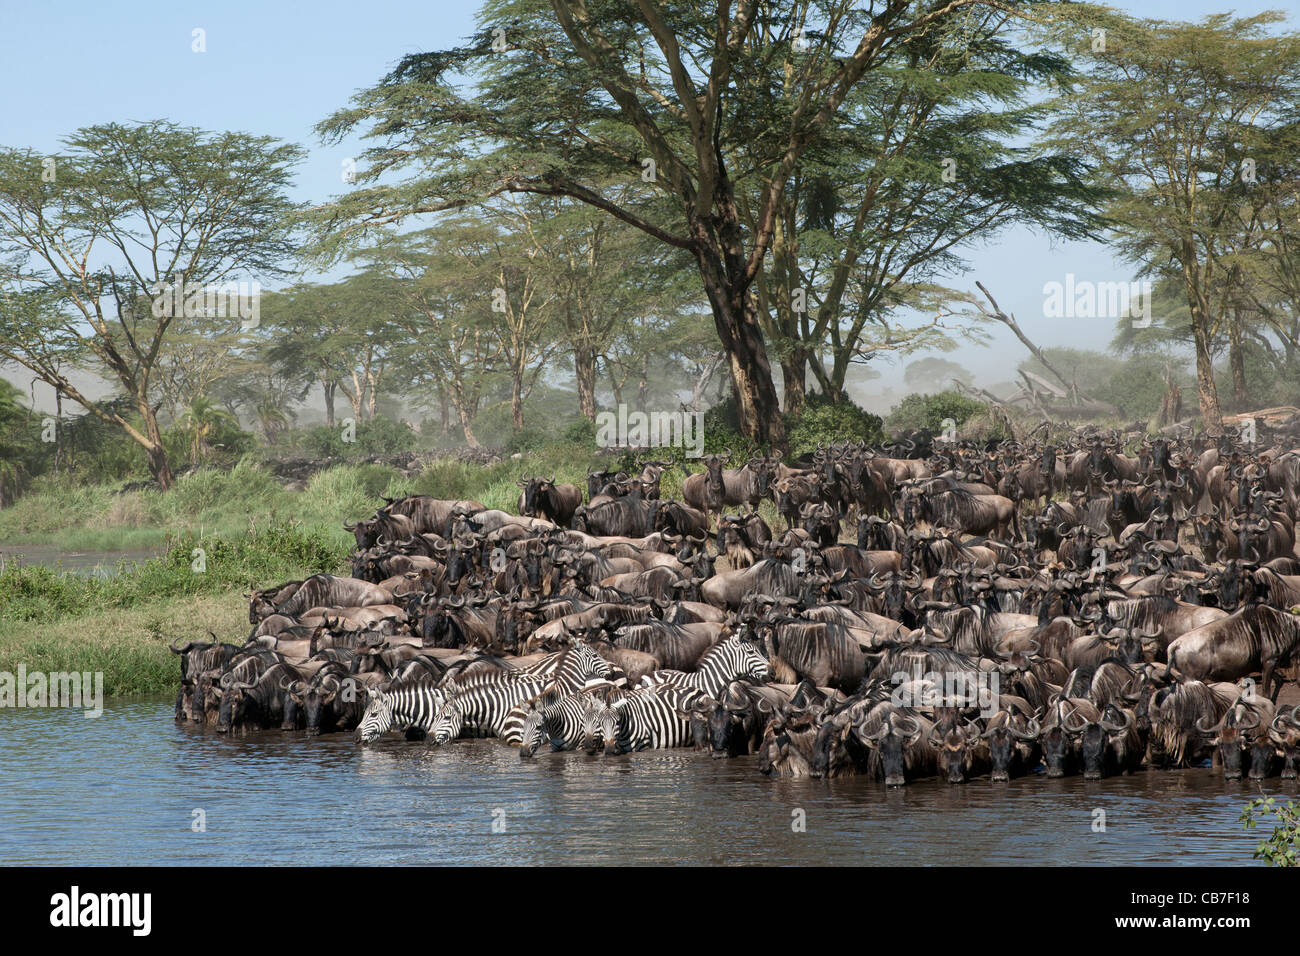 Herds of wildebeest and zebra at the Serengeti National Park, Tanzania, Africa - Stock Image